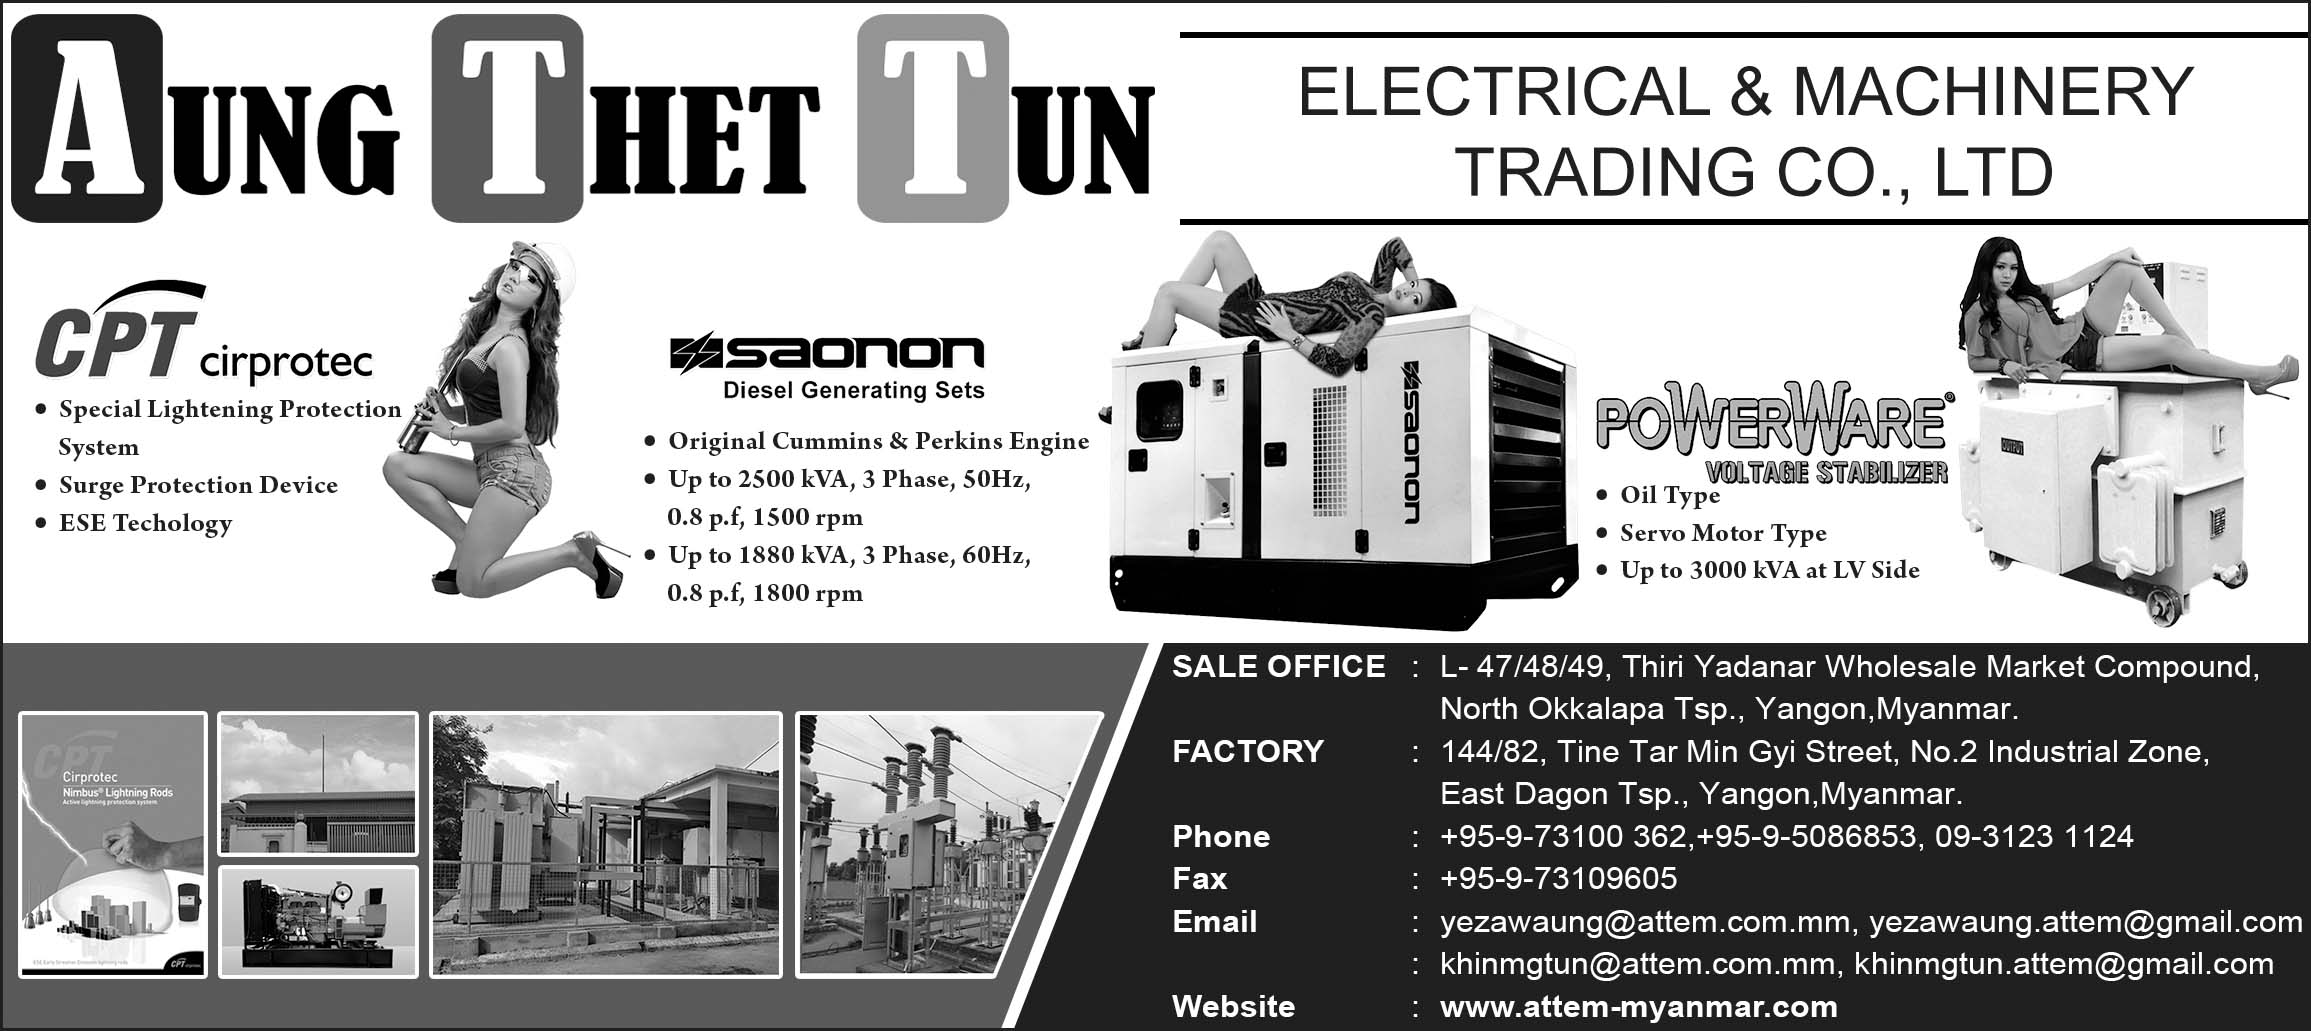 Aung Thet Tun Electrical & Machinery Trading Co., Ltd.